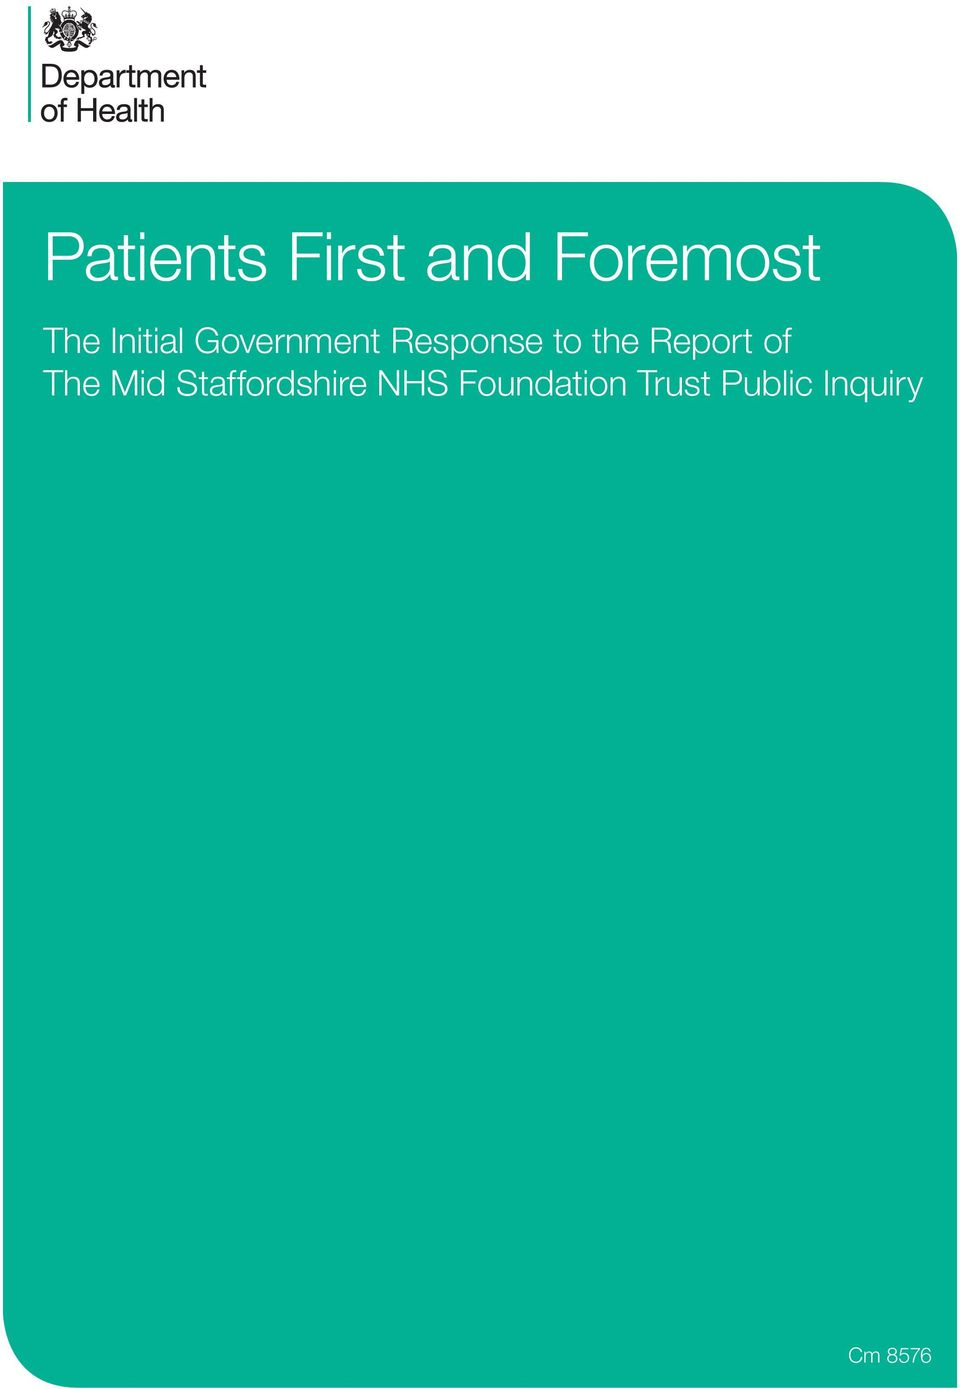 Report of The Mid Staffordshire NHS